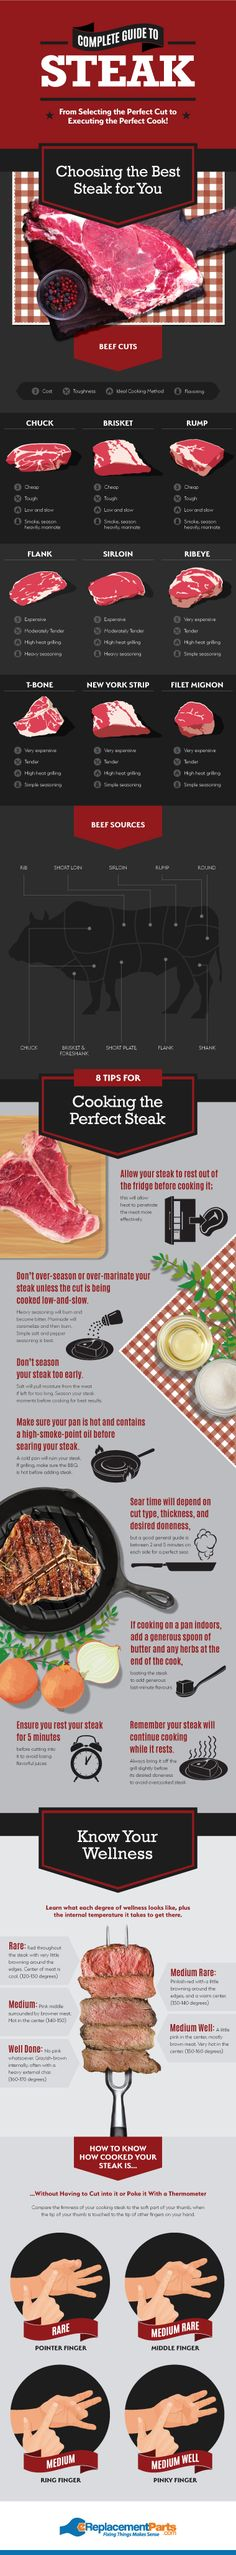 How to discern your steaks, and learn what you love best about the meat.